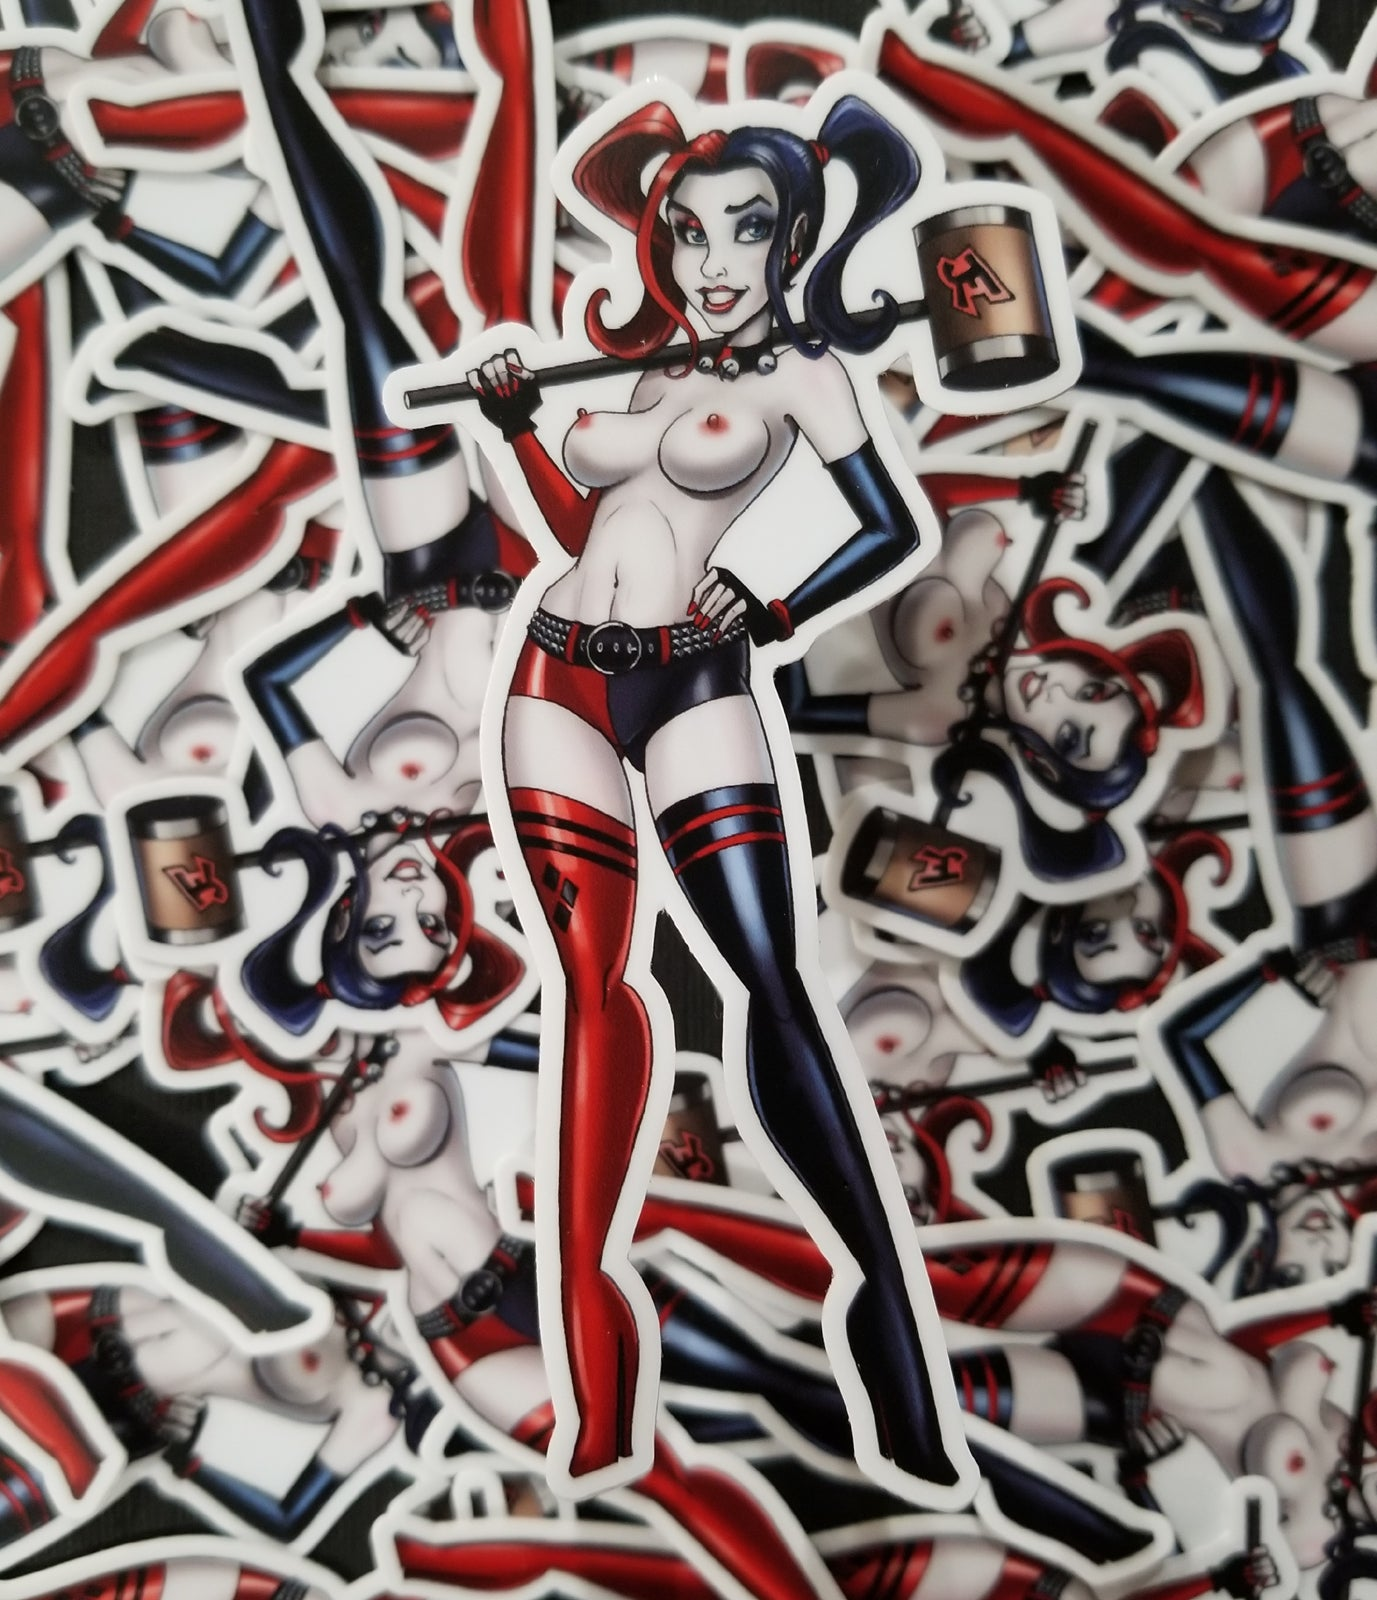 Harley Girl topless lewd pin-up vinyl sticker